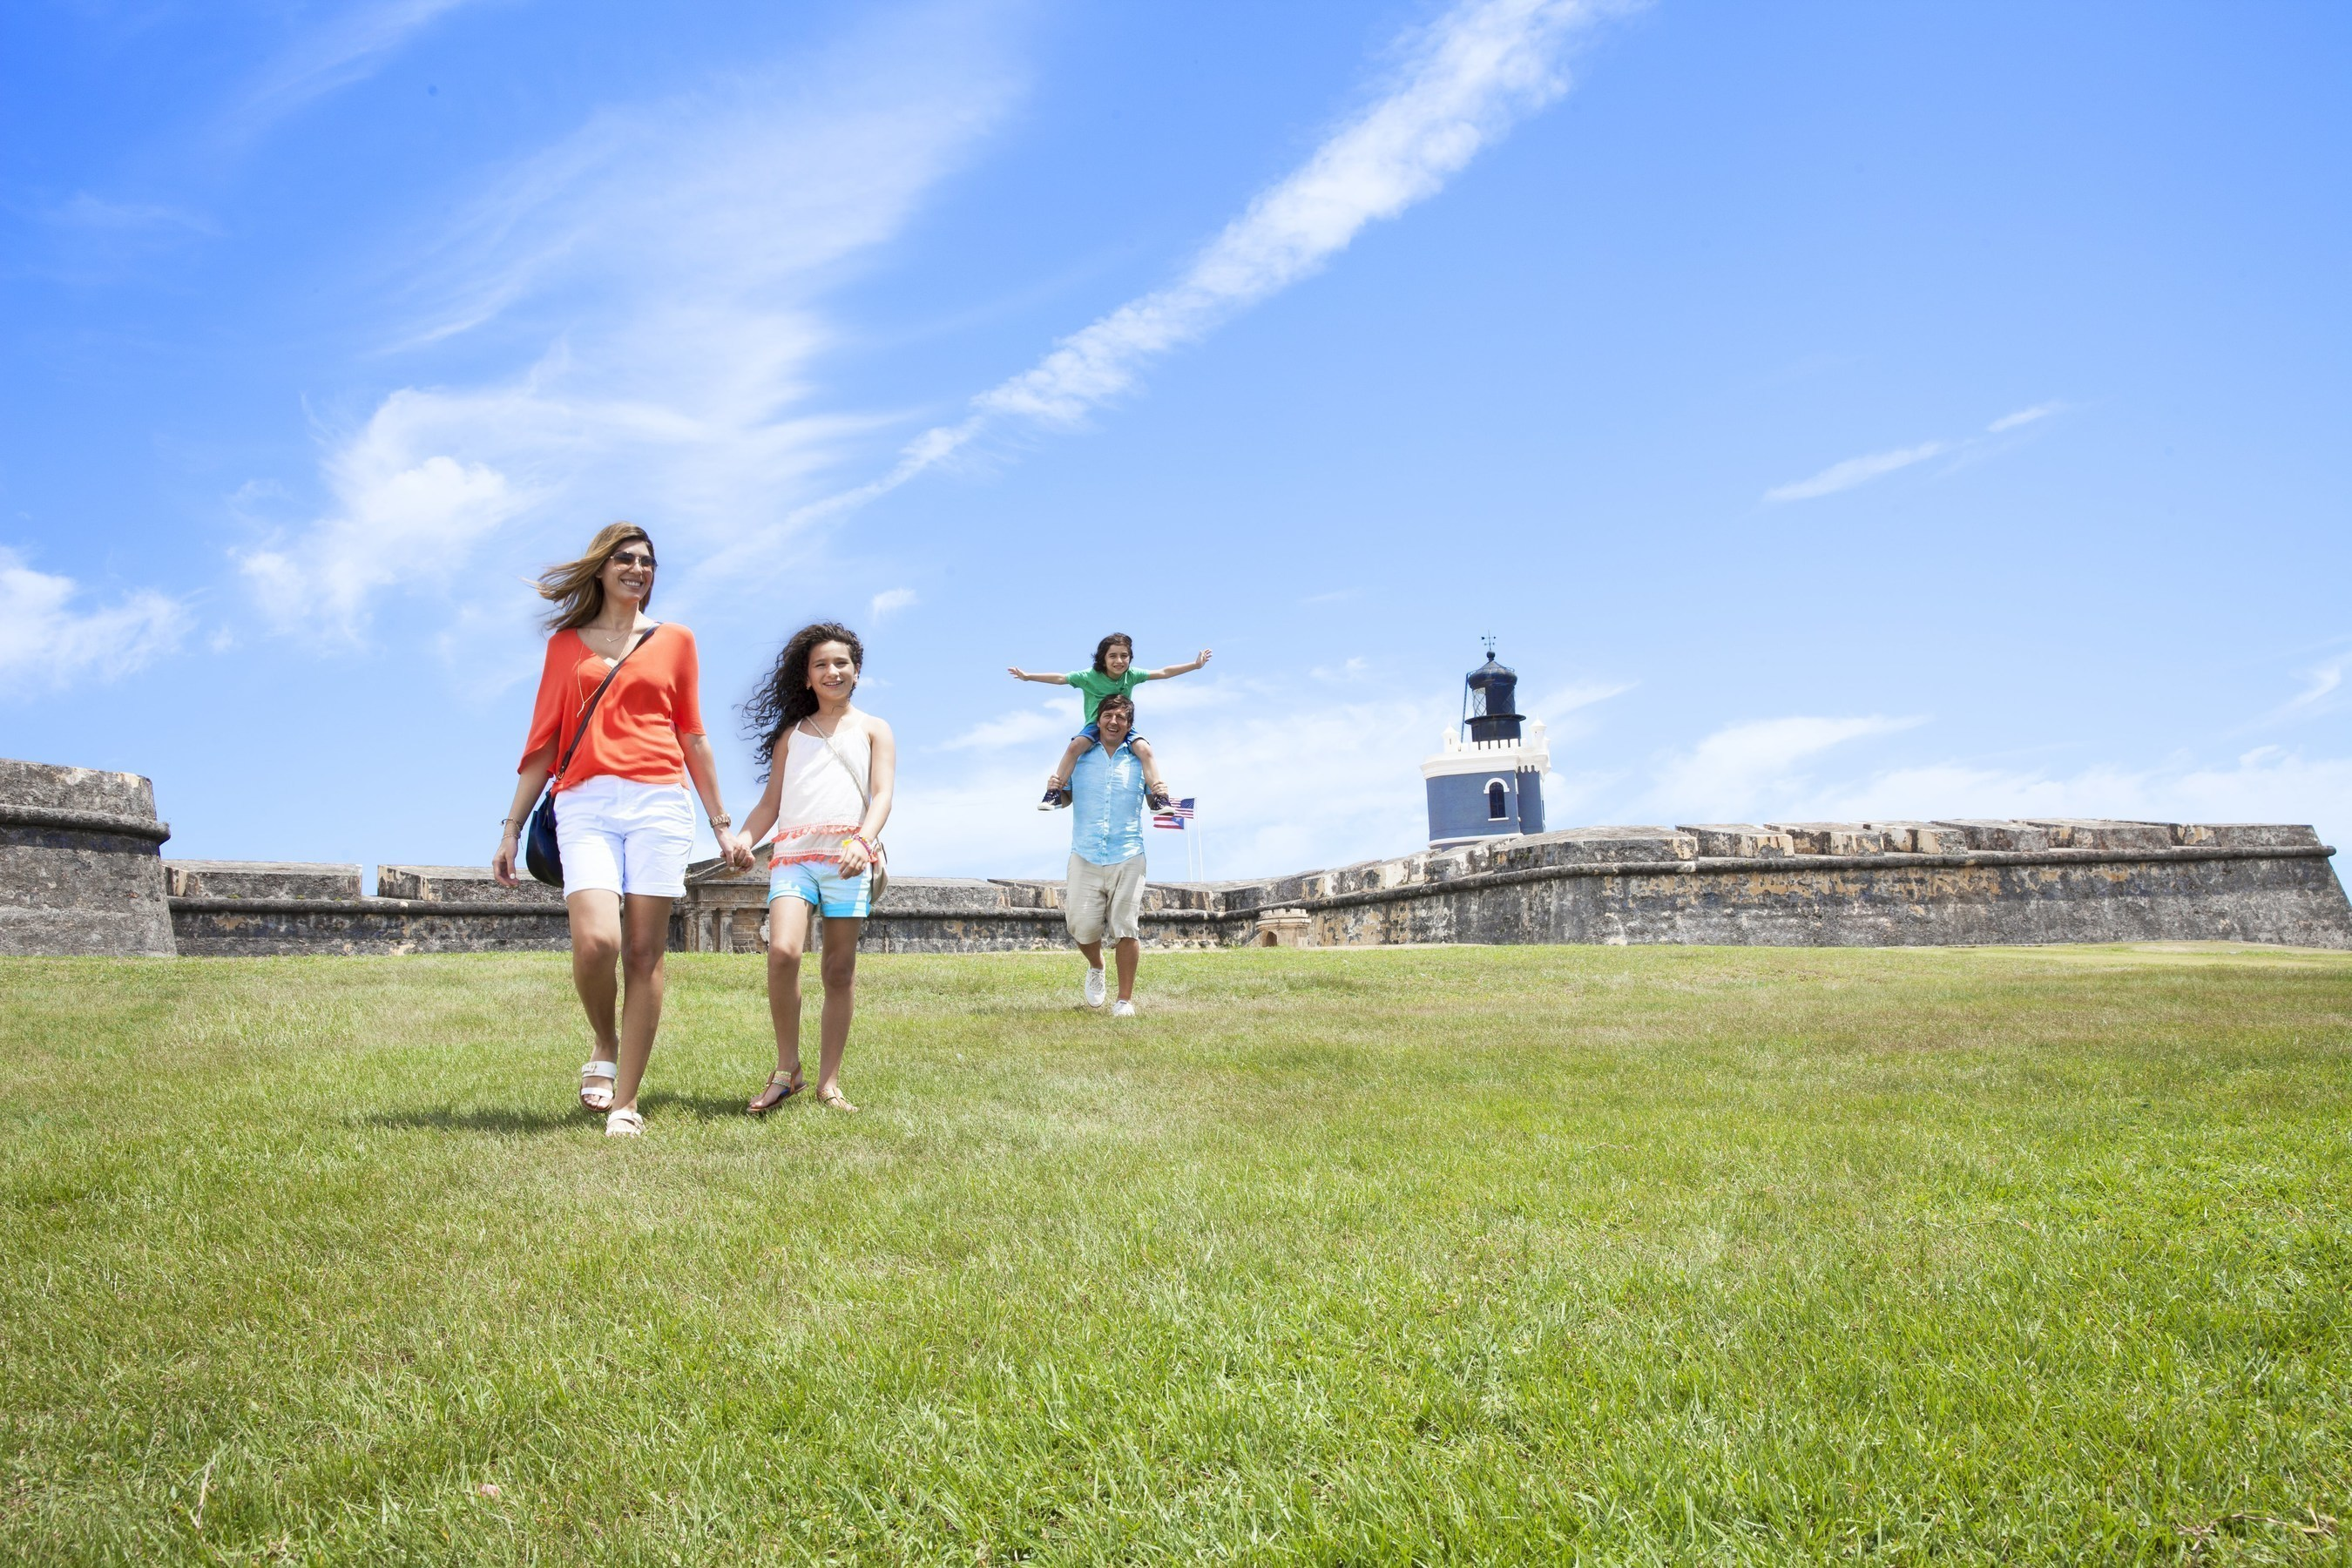 PRTC promotions and Zika education efforts are driving consumers to continue to book Puerto Rico for their summer vacations. Image credit: Puerto Rico Tourism Company